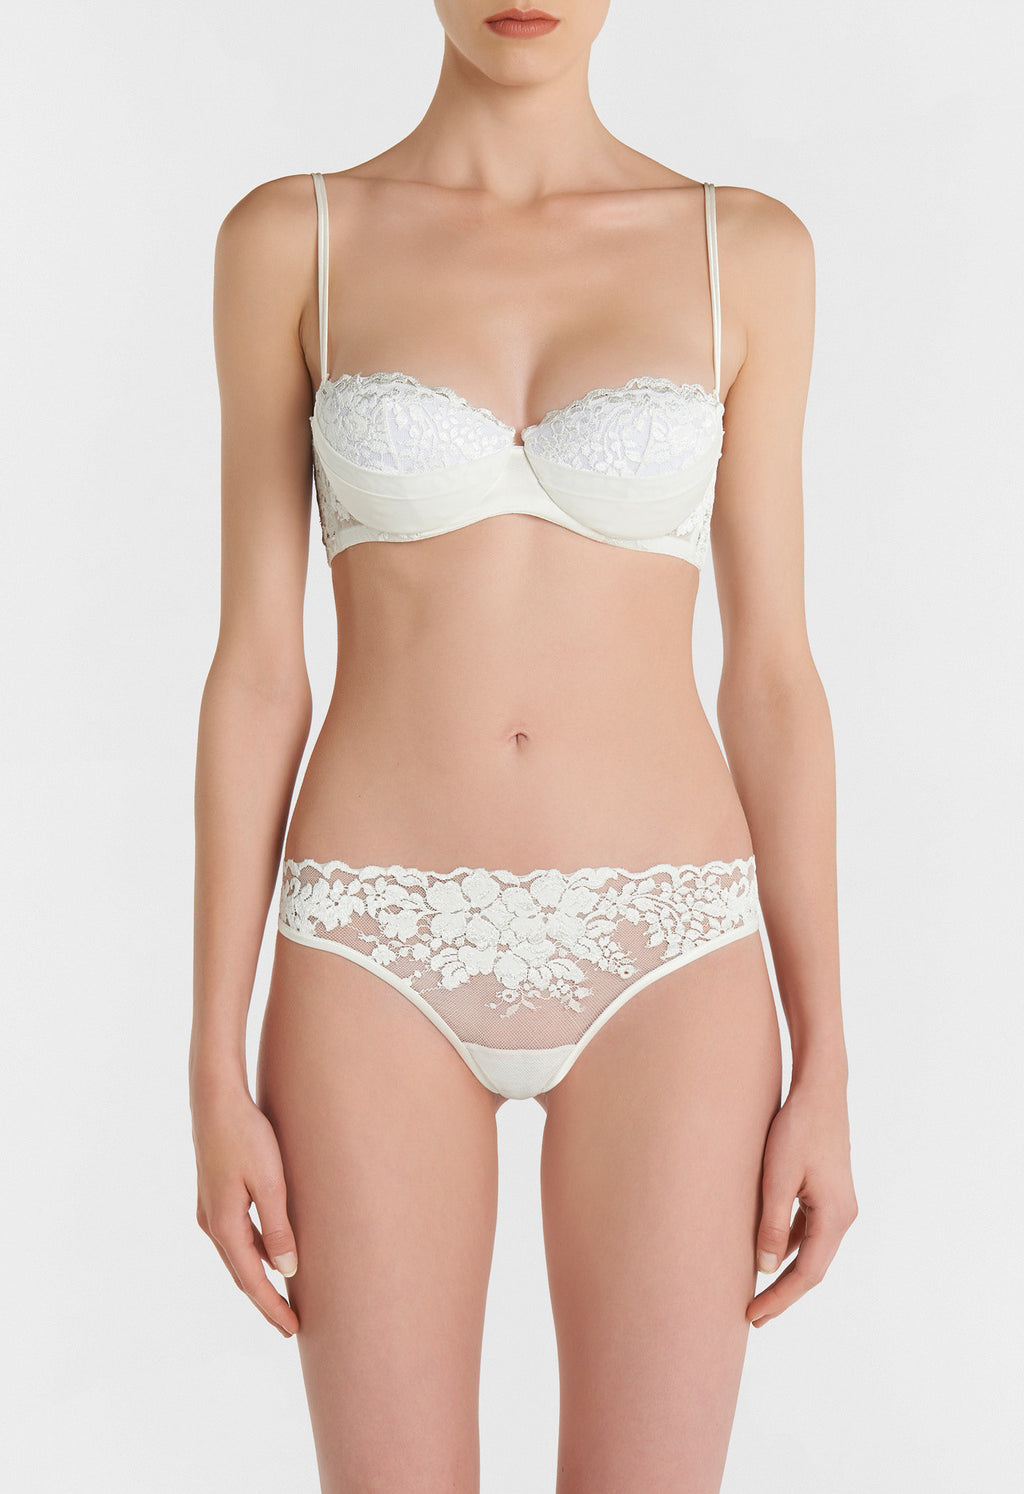 Off-White Bandeau Bra in Leavers Lace and Silk Georgette